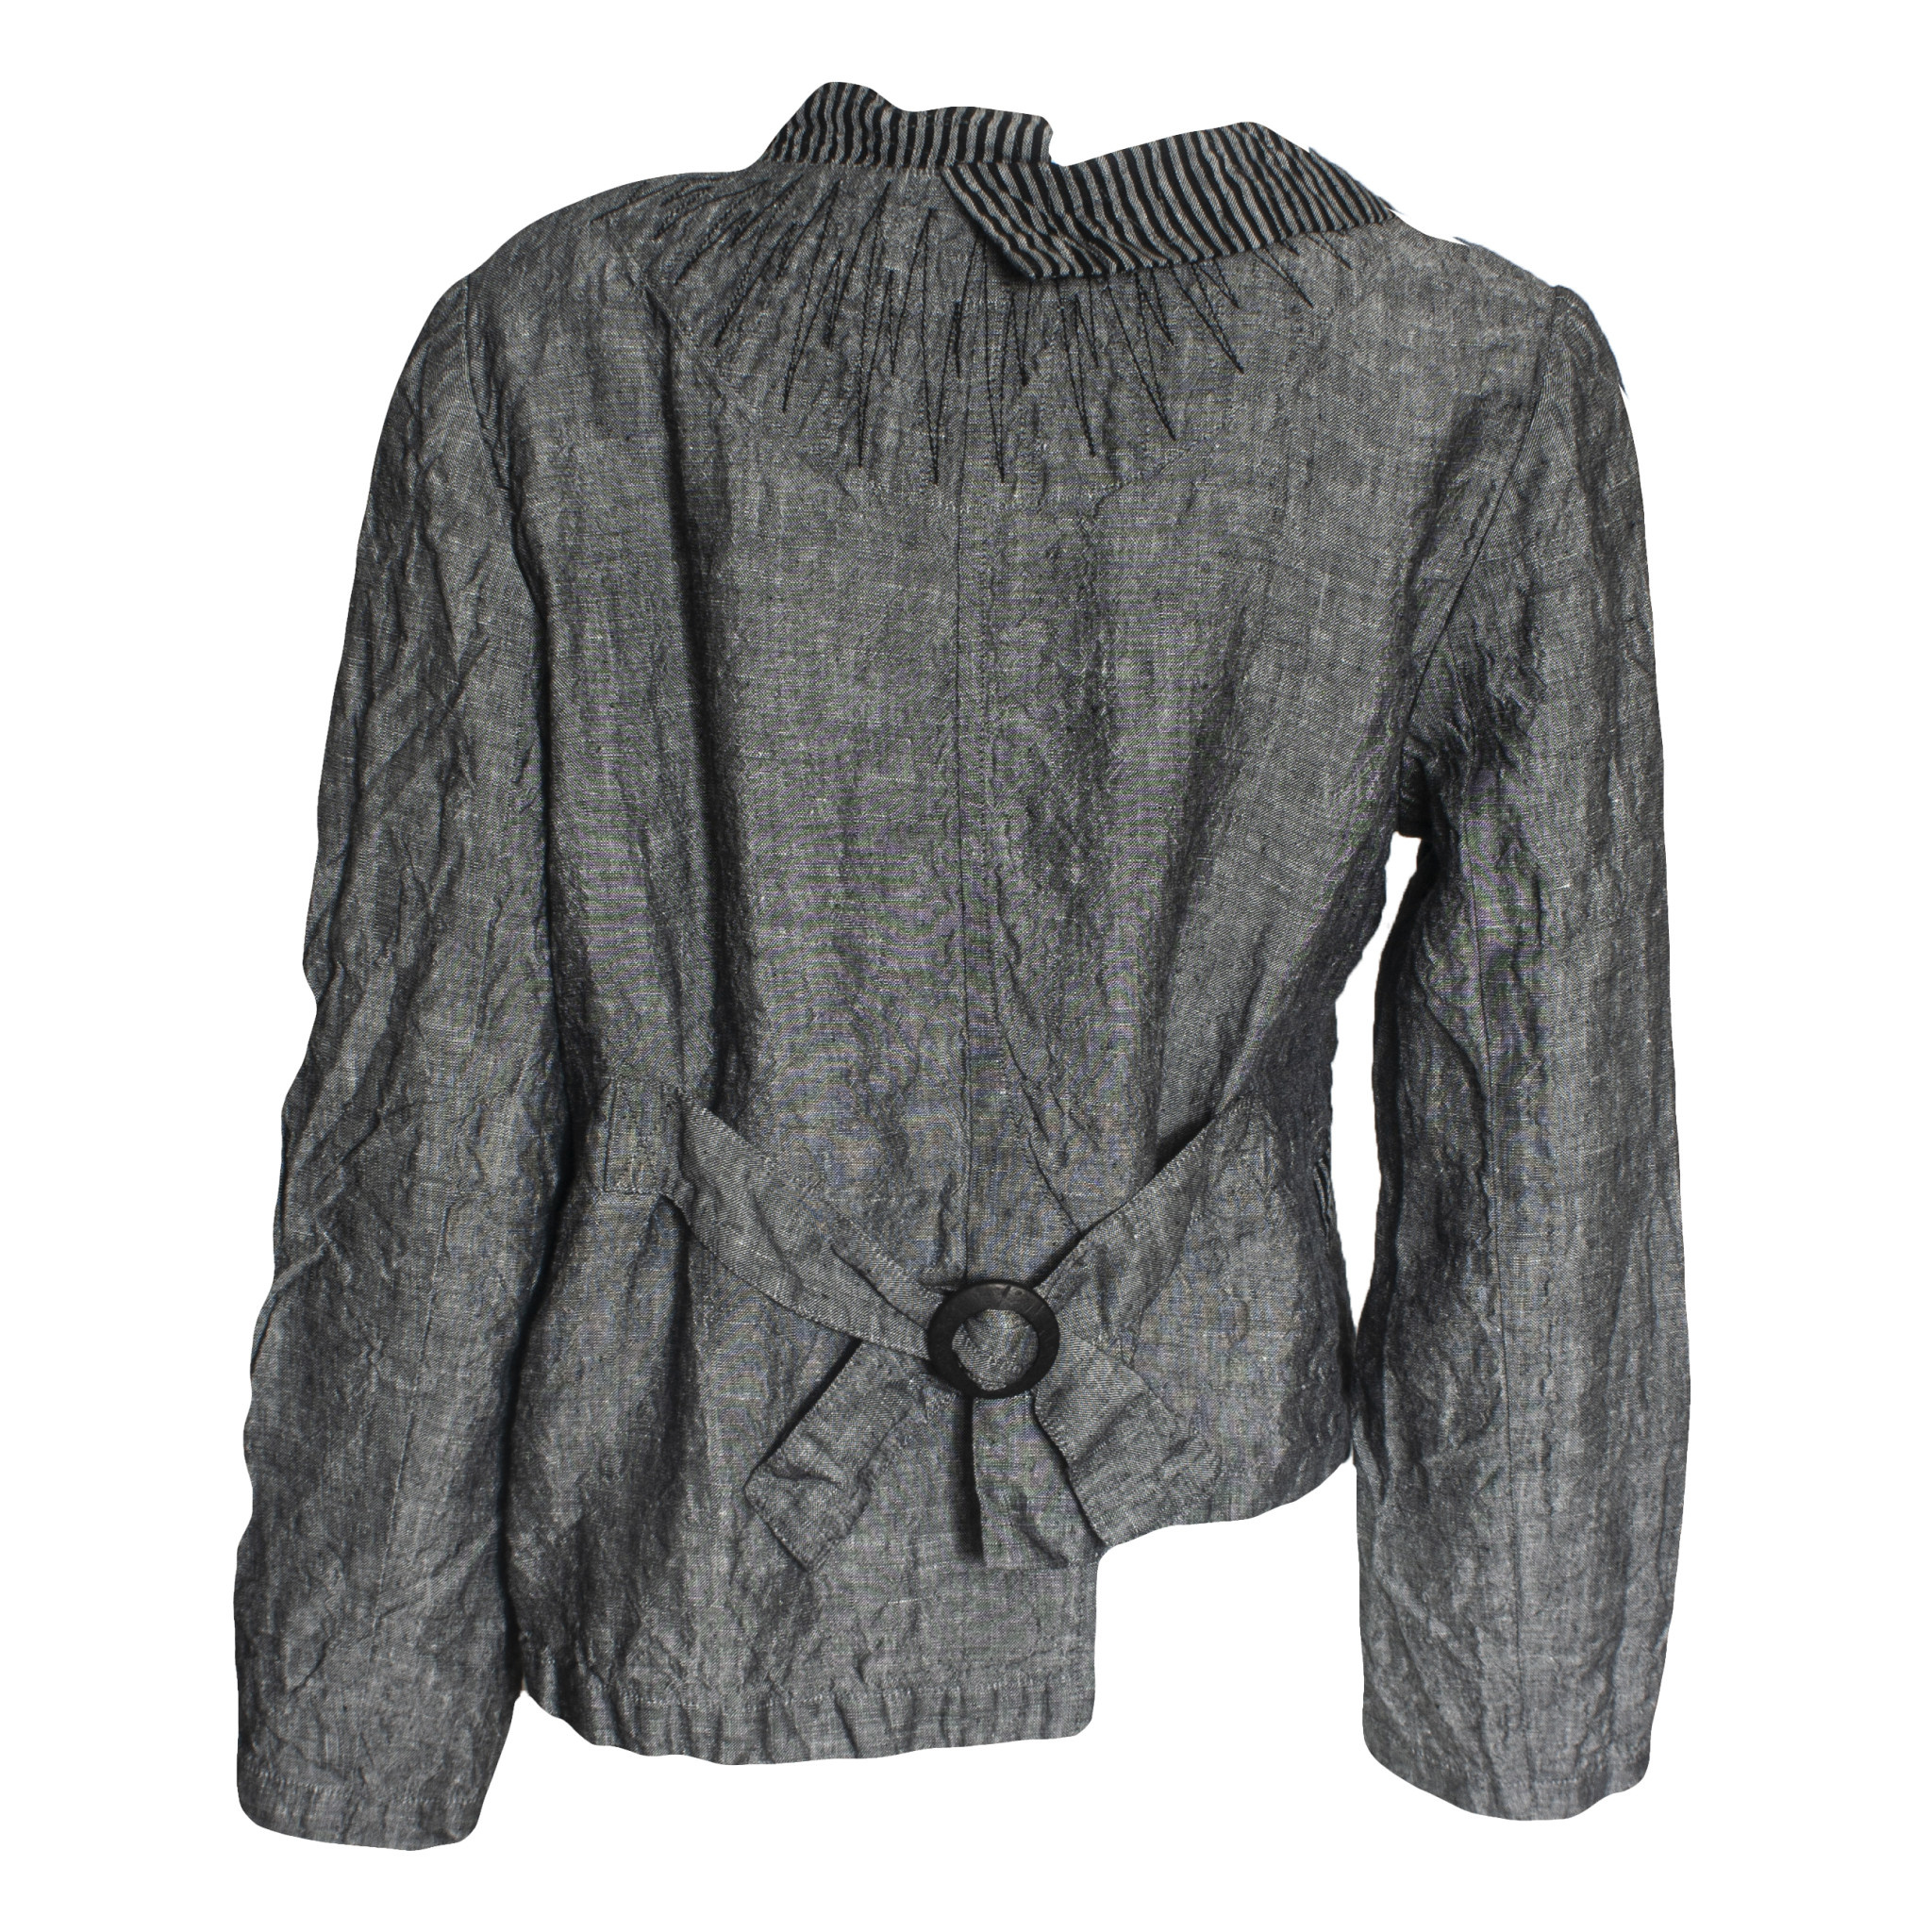 Mara Gibbucci Mara Gibbucci Abstract Stitch Jacket - Grey